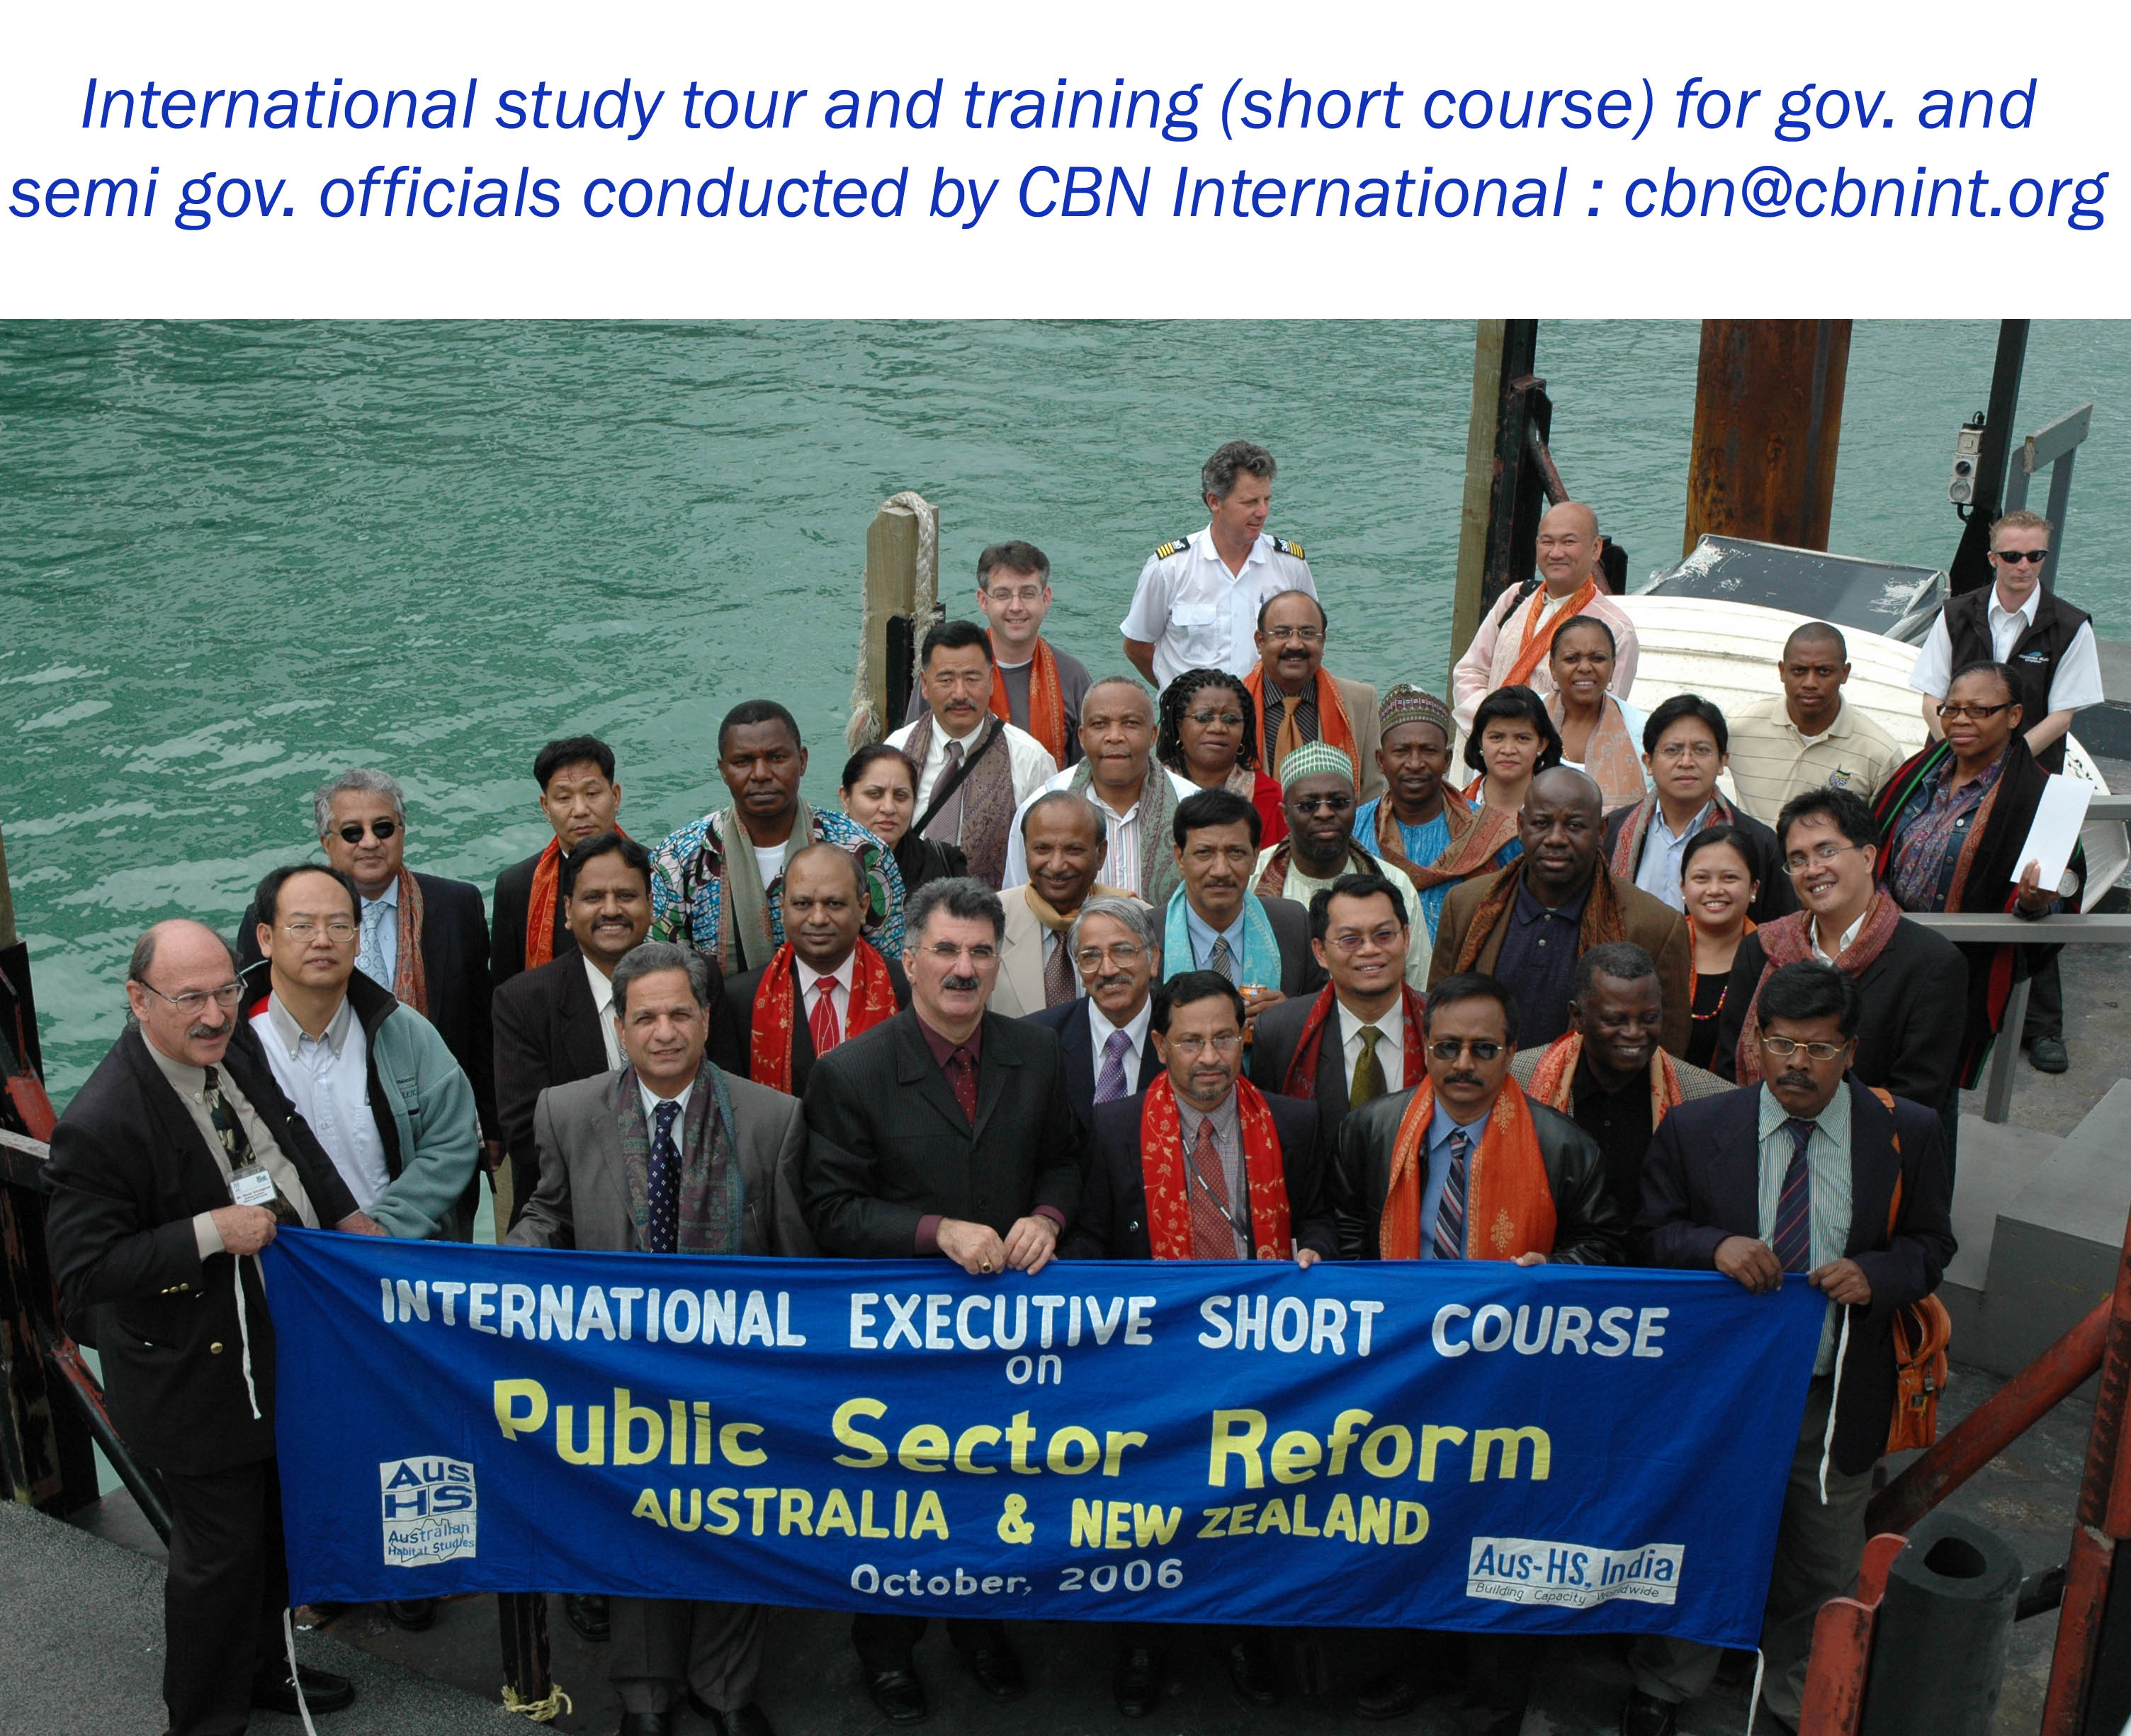 A group of participants during a CBN international training and study tour workshop held in Australia and New Zealand; short course on Good Governance series.